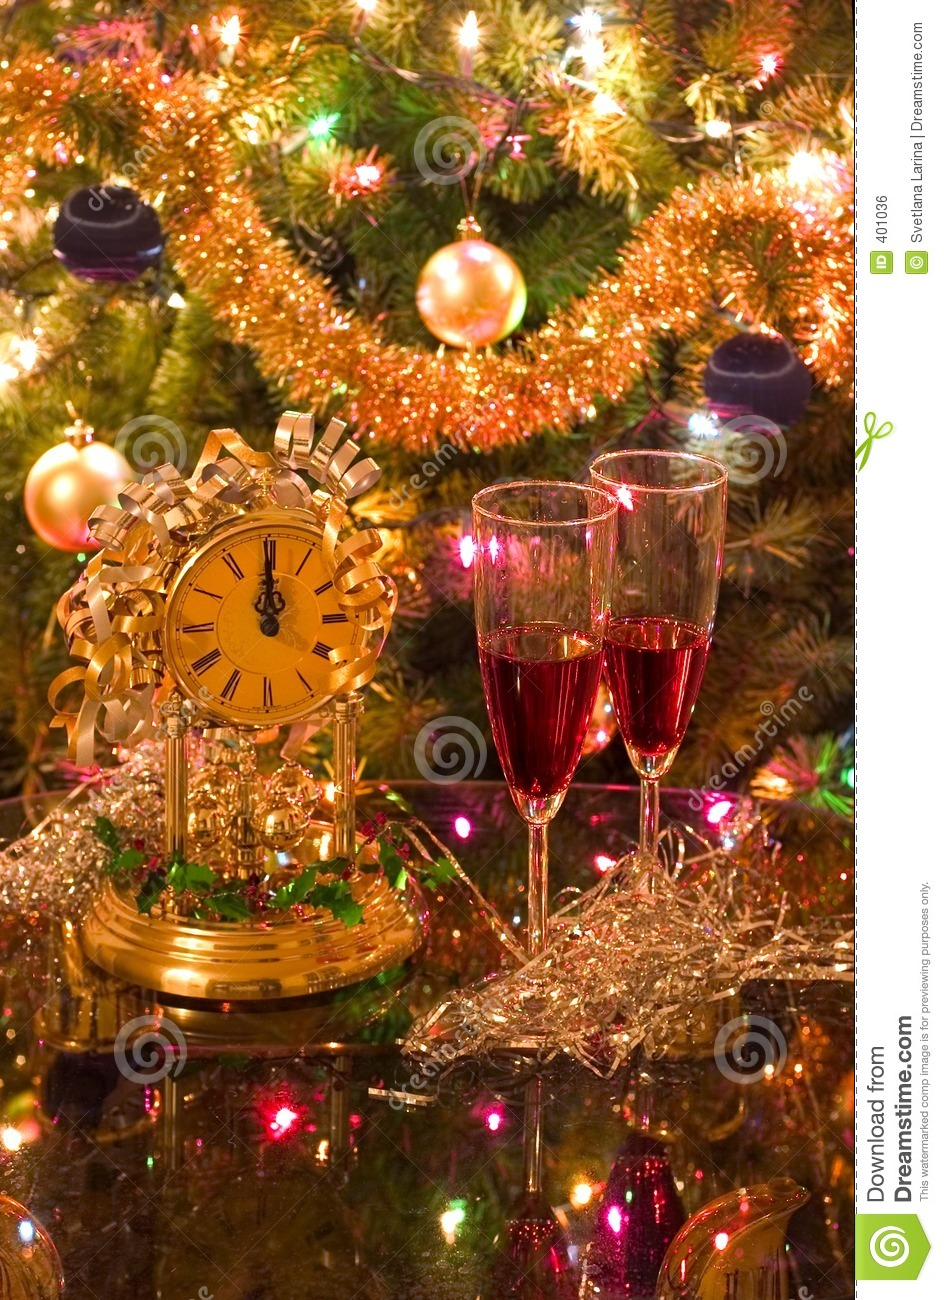 Celebrating new year (christmas)